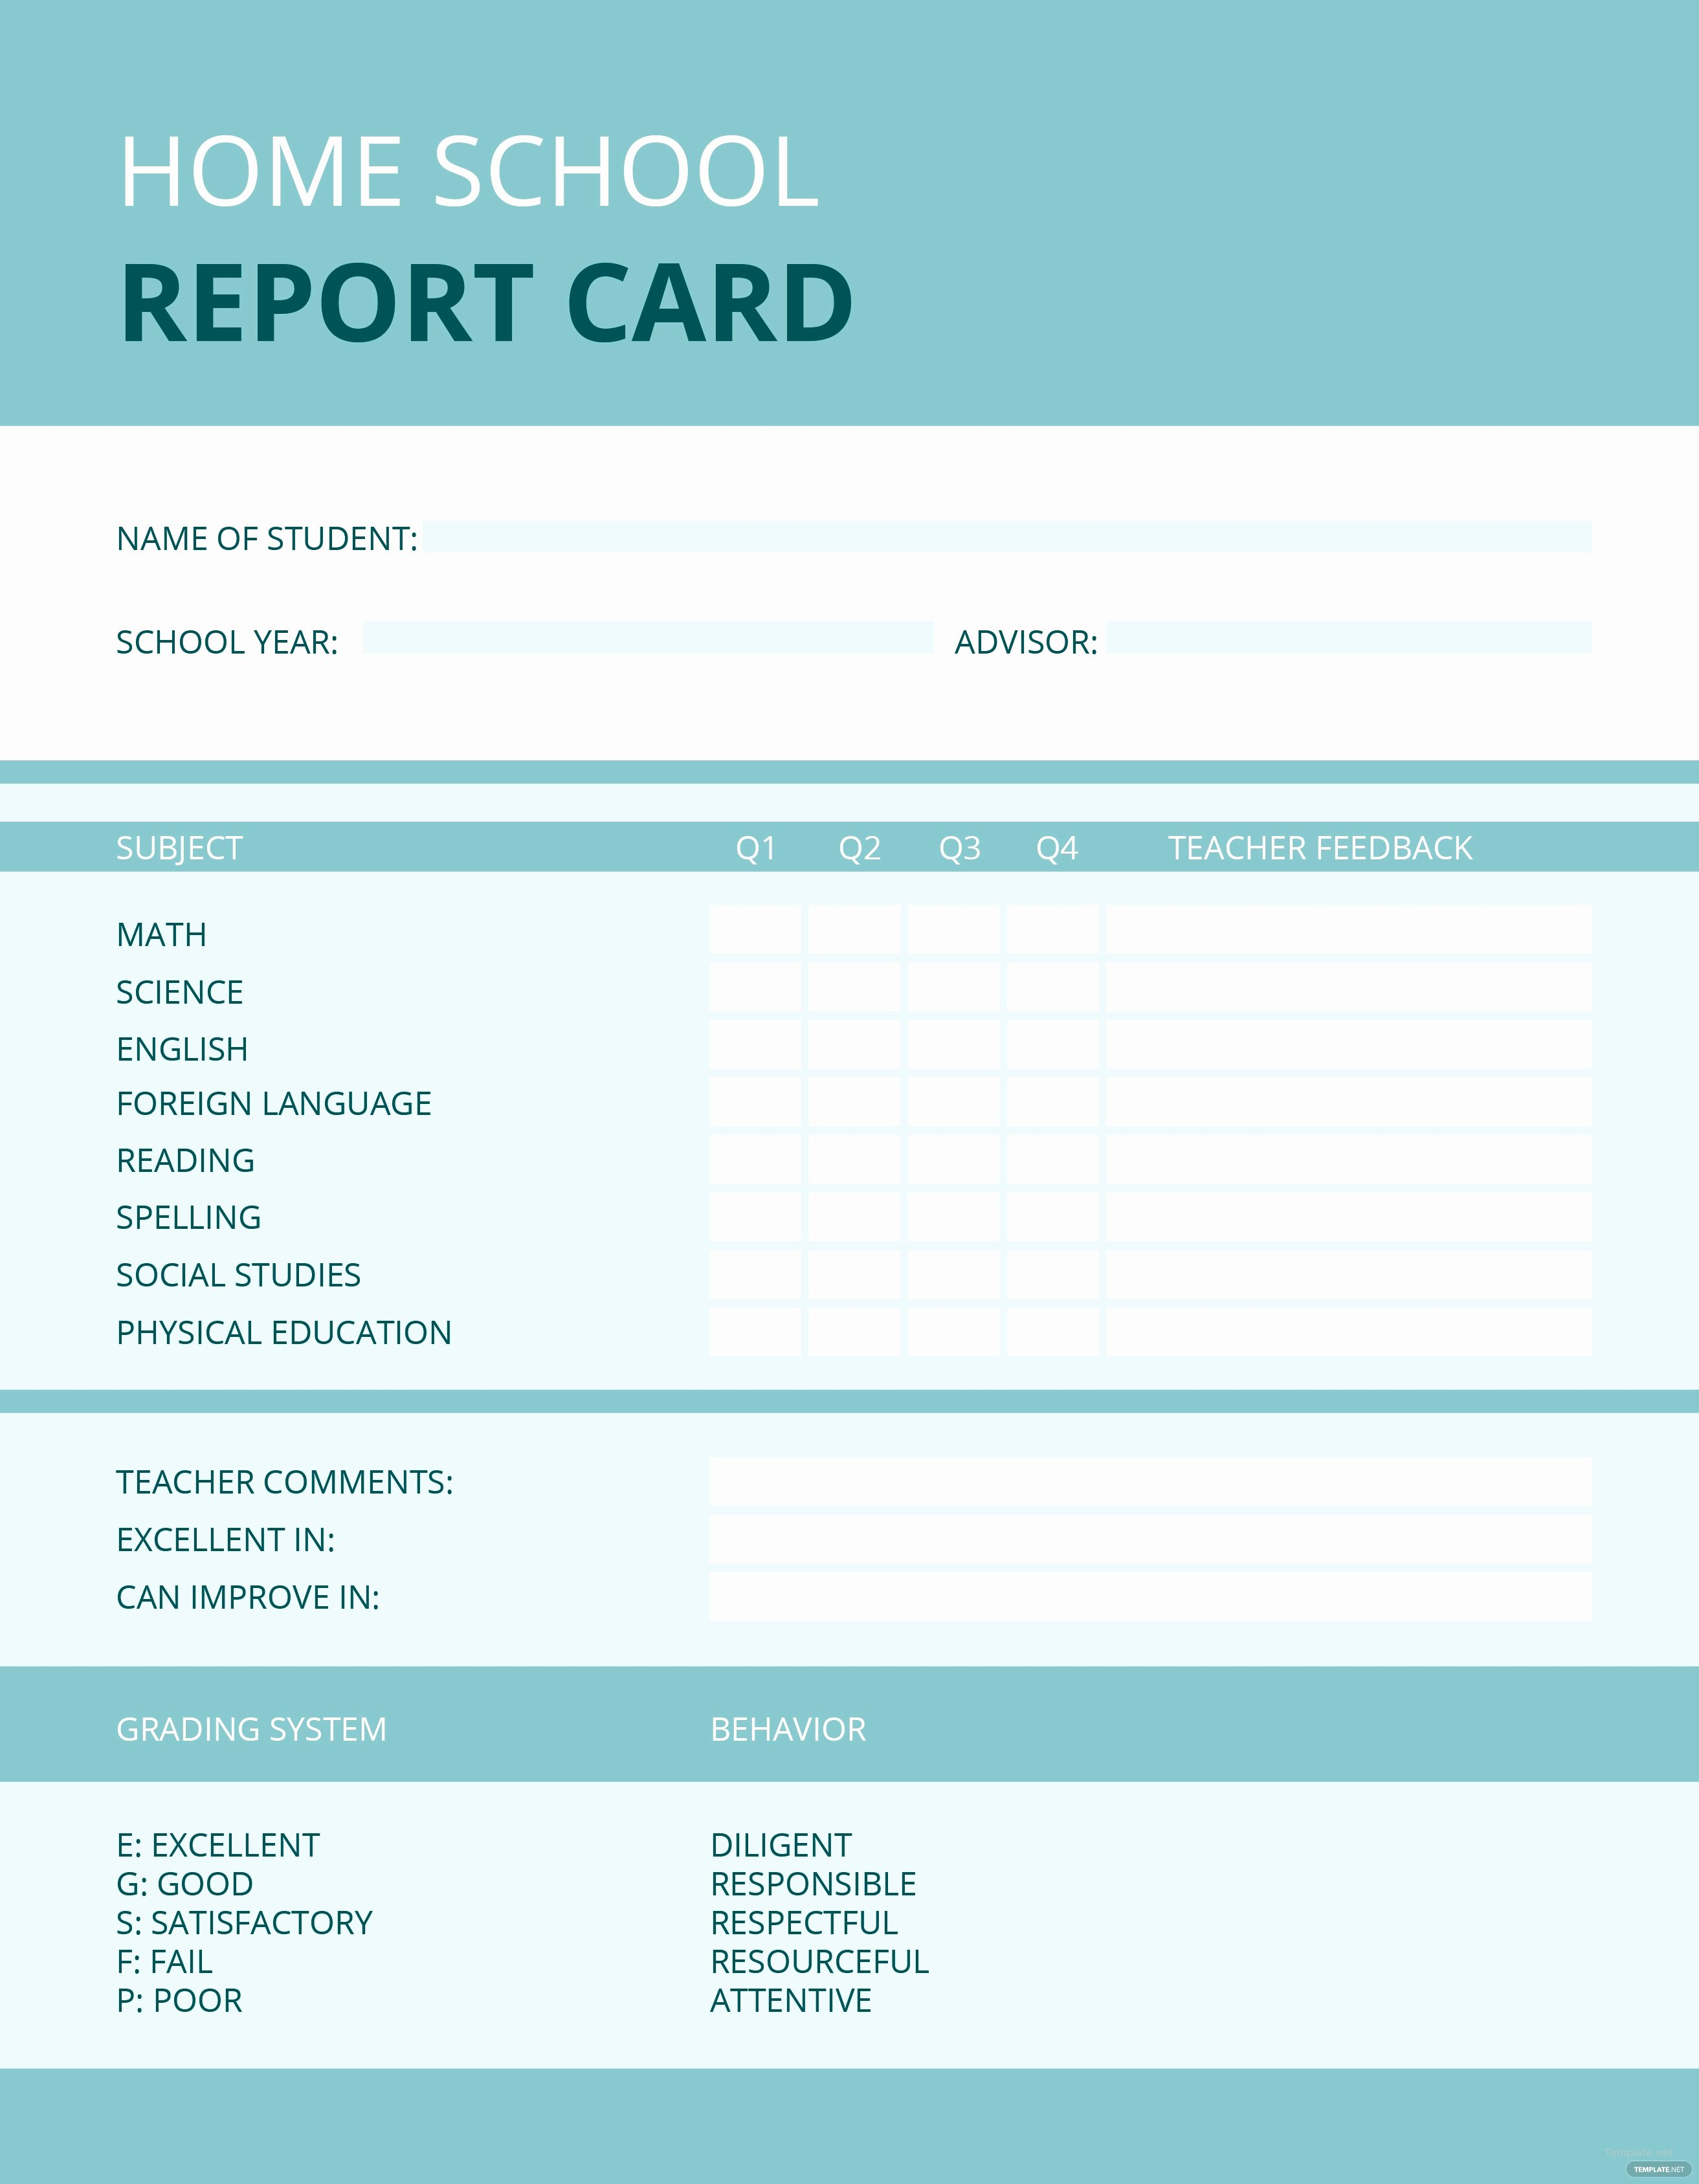 Simple Report Card Template Lovely Free Home School Report Card Template In Microsoft Word